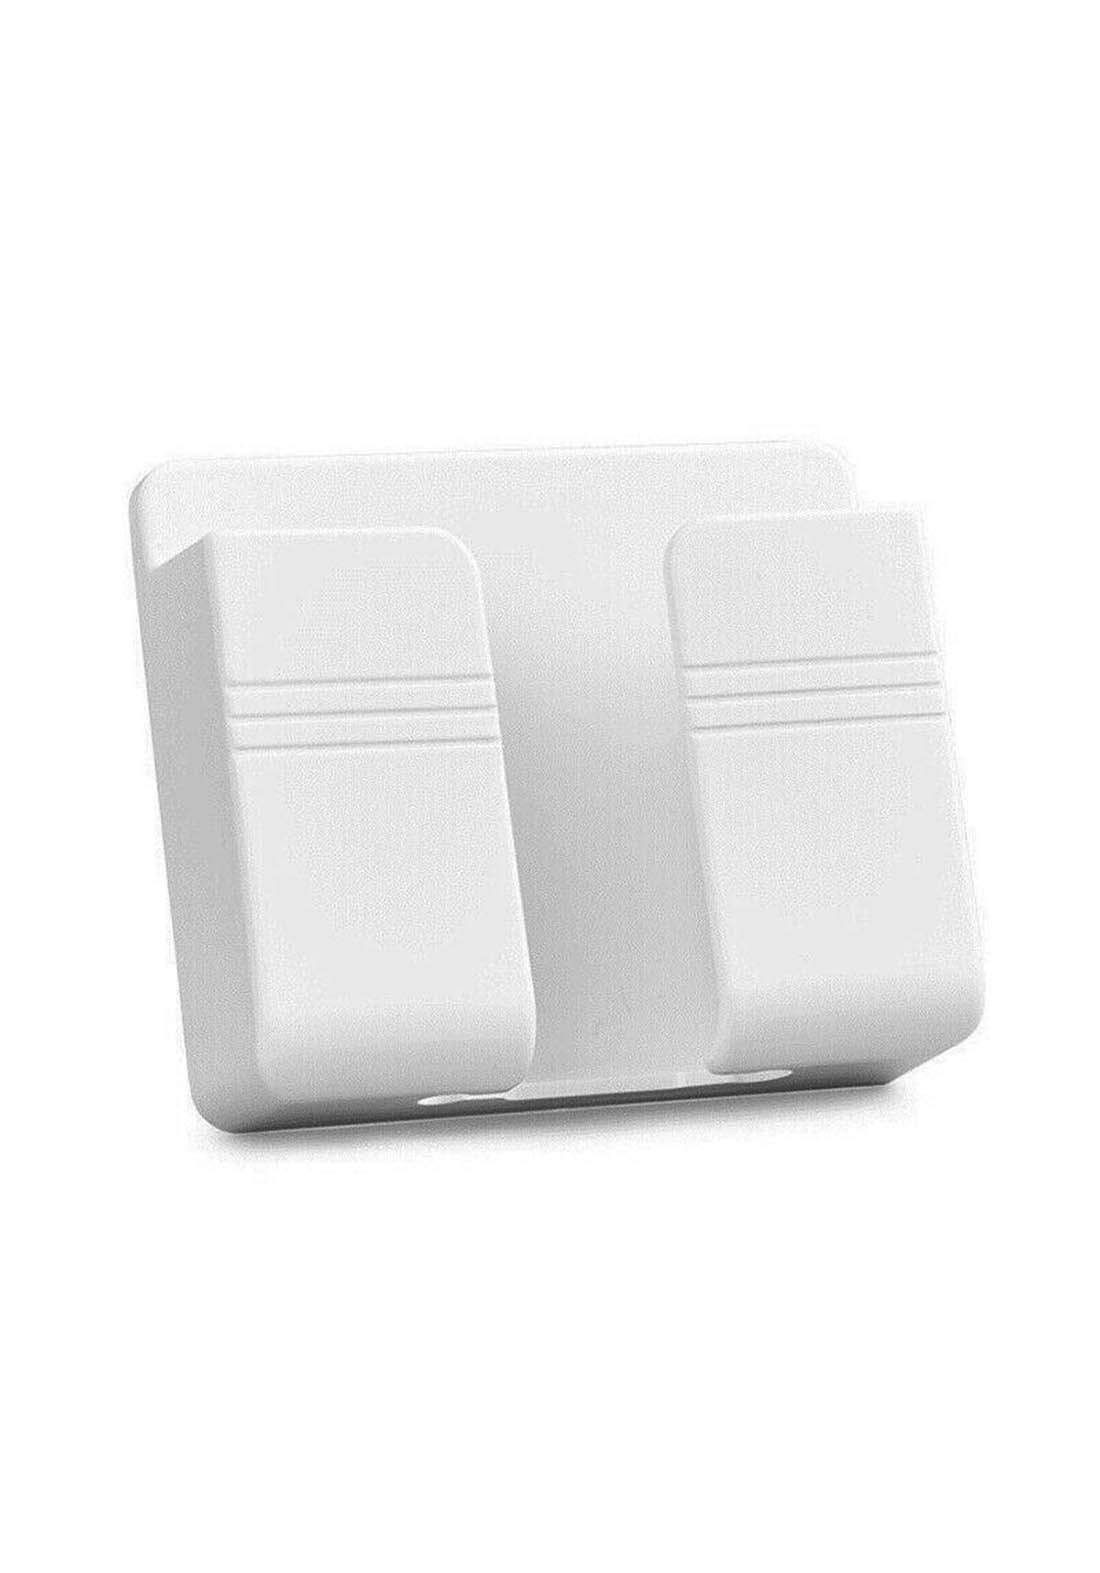 Wall Mount Mobile Phone Stand Mobile Holder حامل متعدد الاستخدام